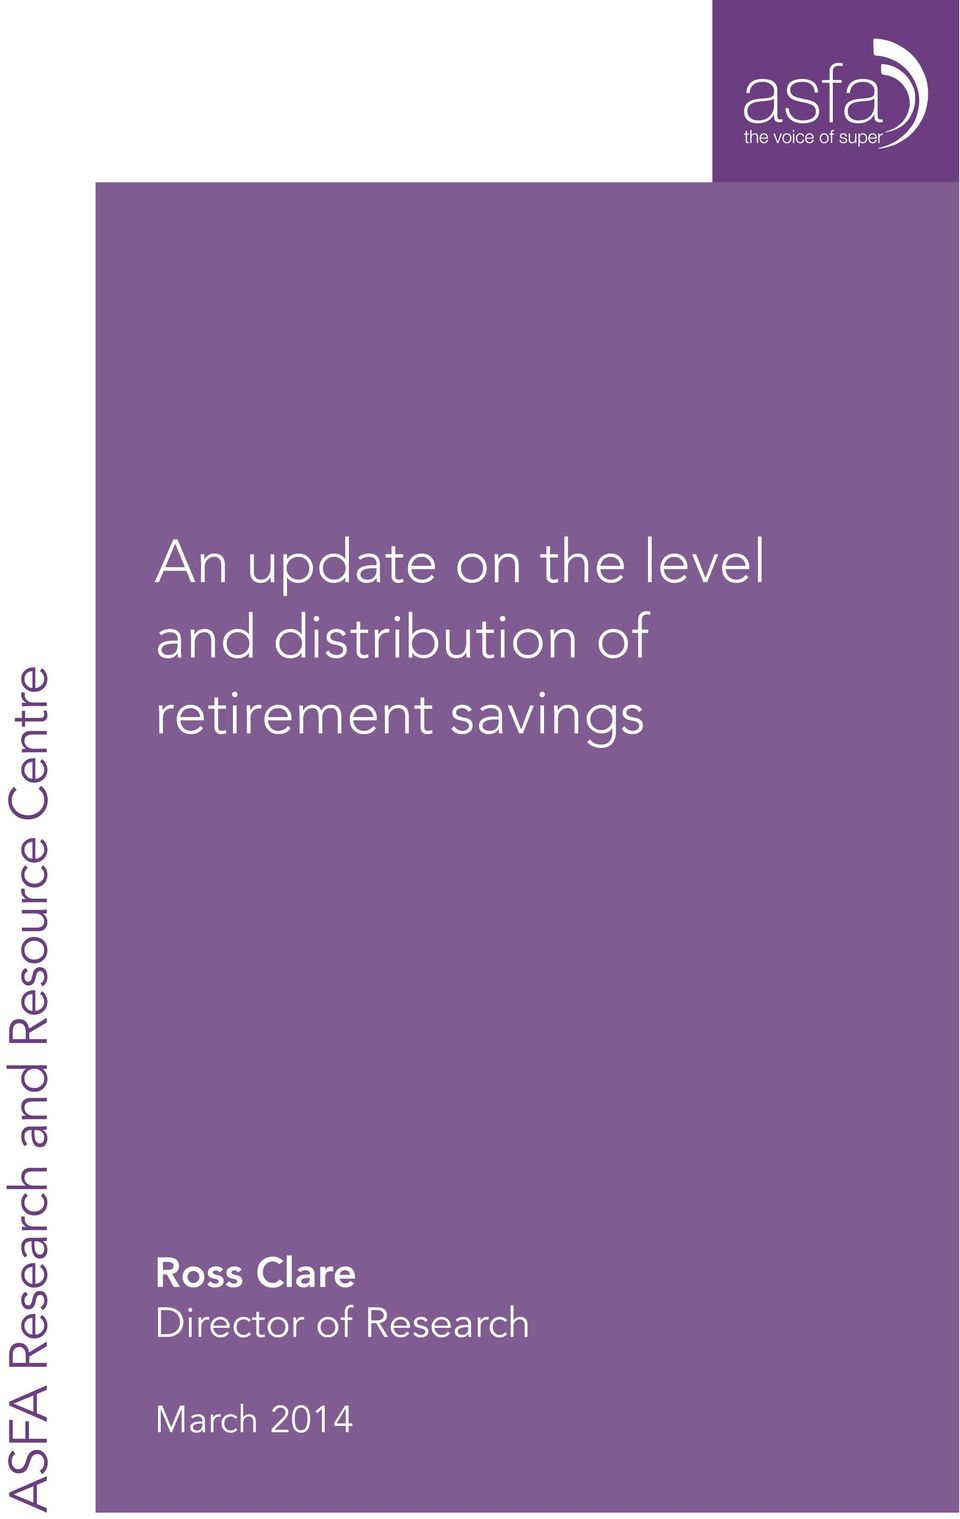 distribution of retirement savings